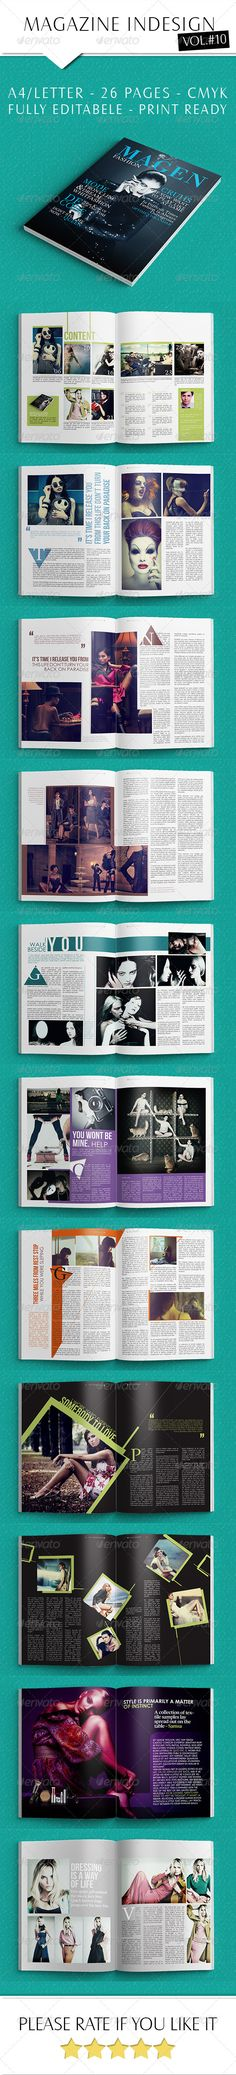 Indesign Fashion Magazine — InDesign INDD #gray #layout • Available here → https://graphicriver.net/item/indesign-fashion-magazine/6504061?ref=pxcr